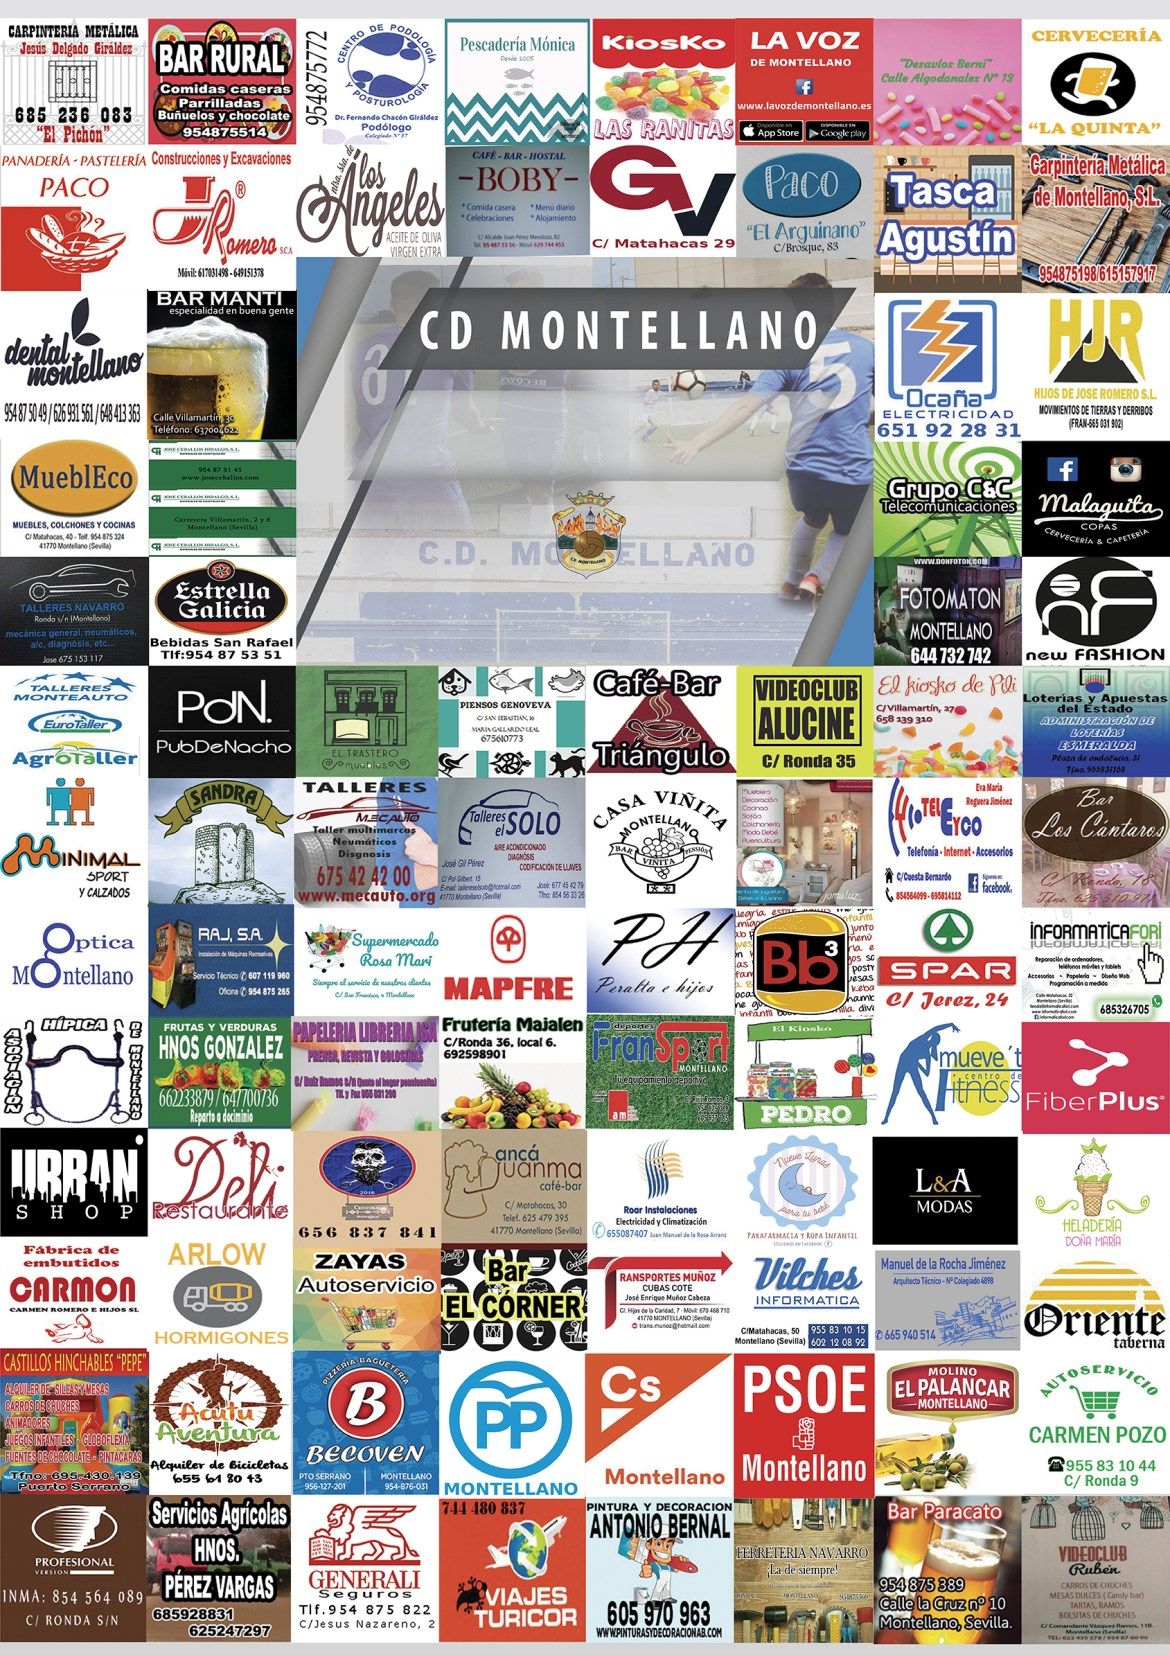 Cartel CD Montellano 2018/2019